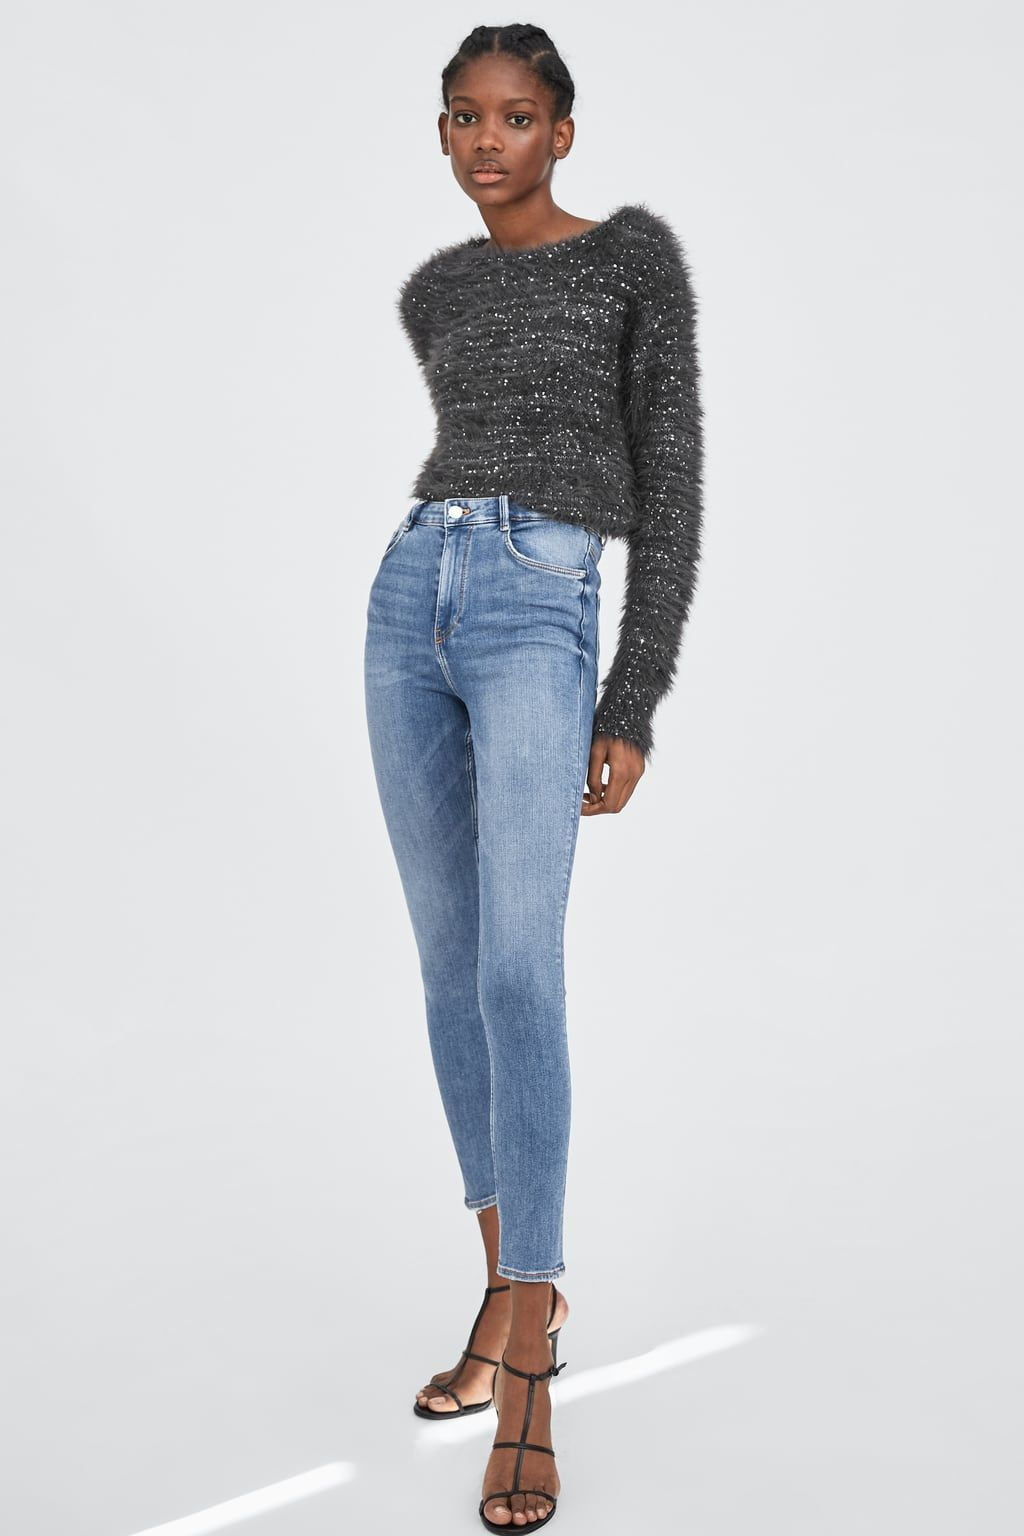 37eaa35114 Image 1 of PREMIUM HI-RISE SKINNY SCULPT JEANS from Zara | STYLE BEE ...